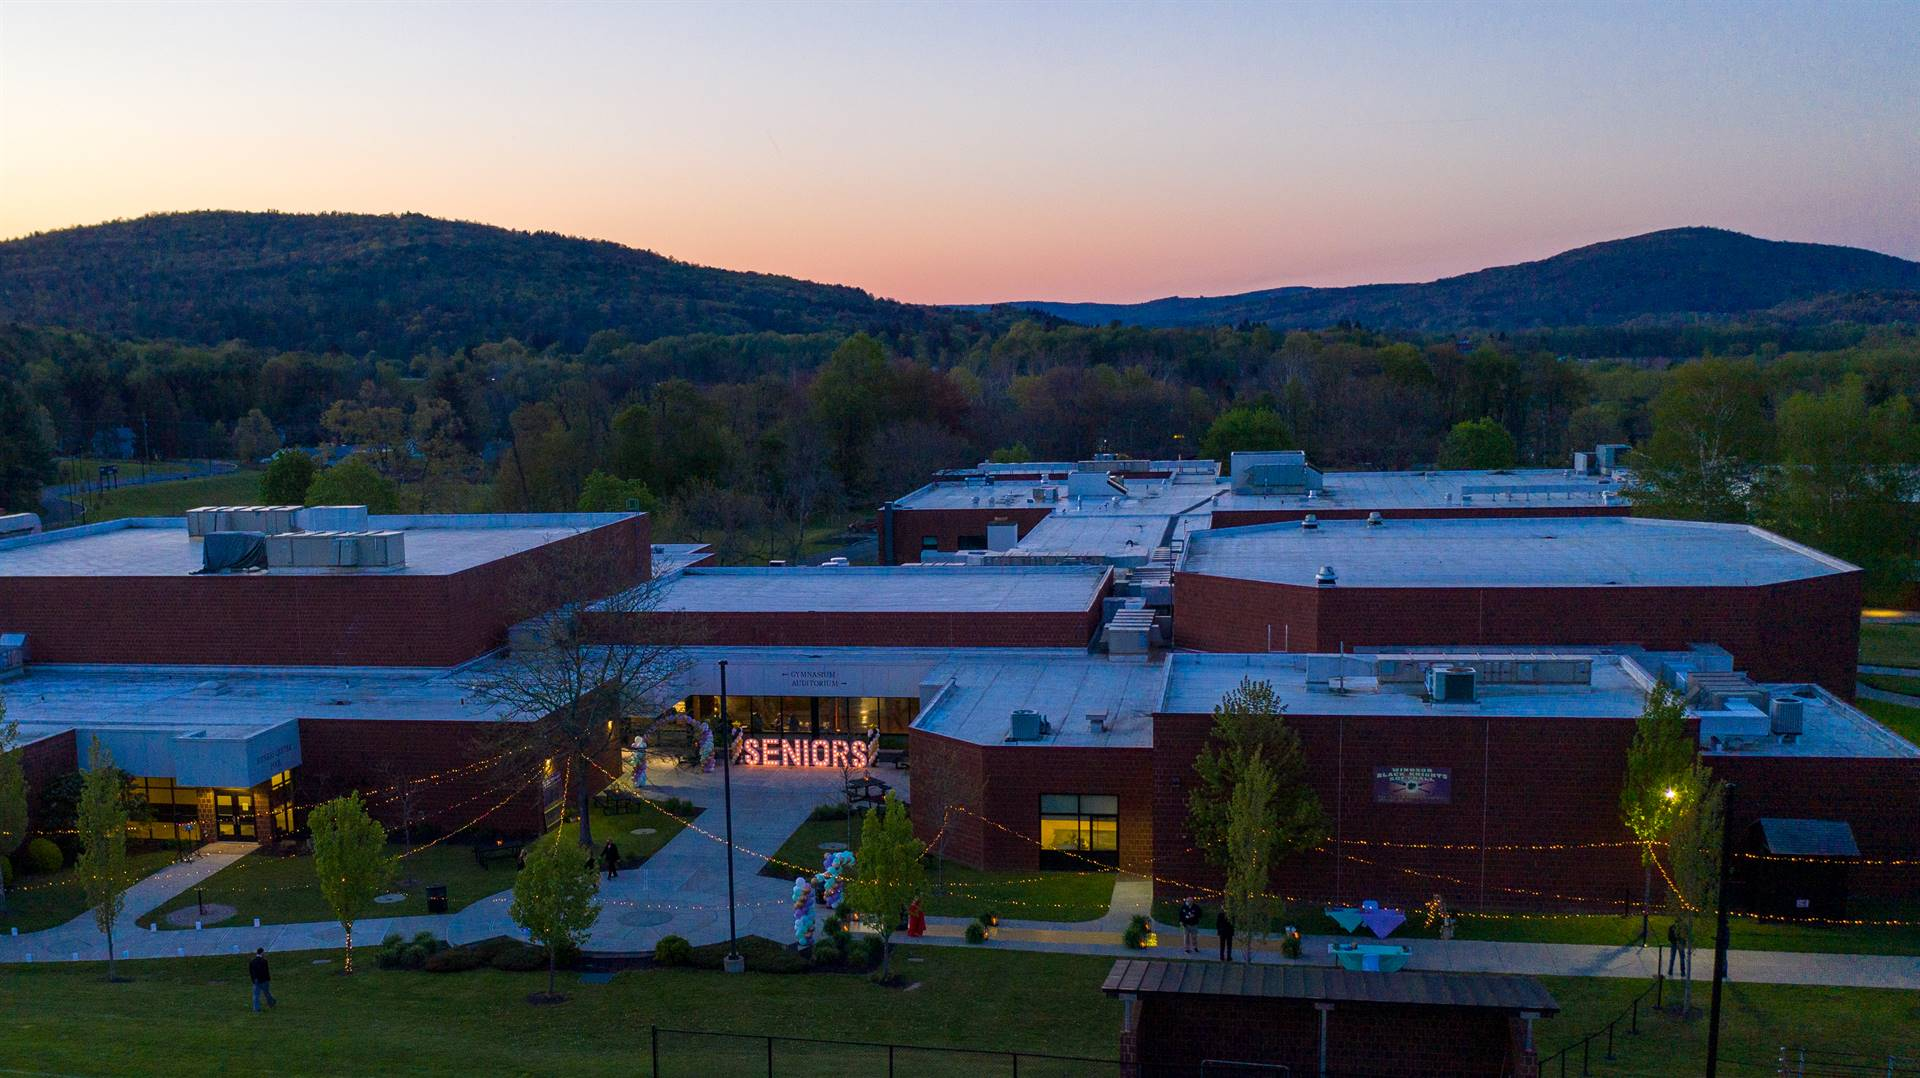 Arial view of WCHS building at sunset